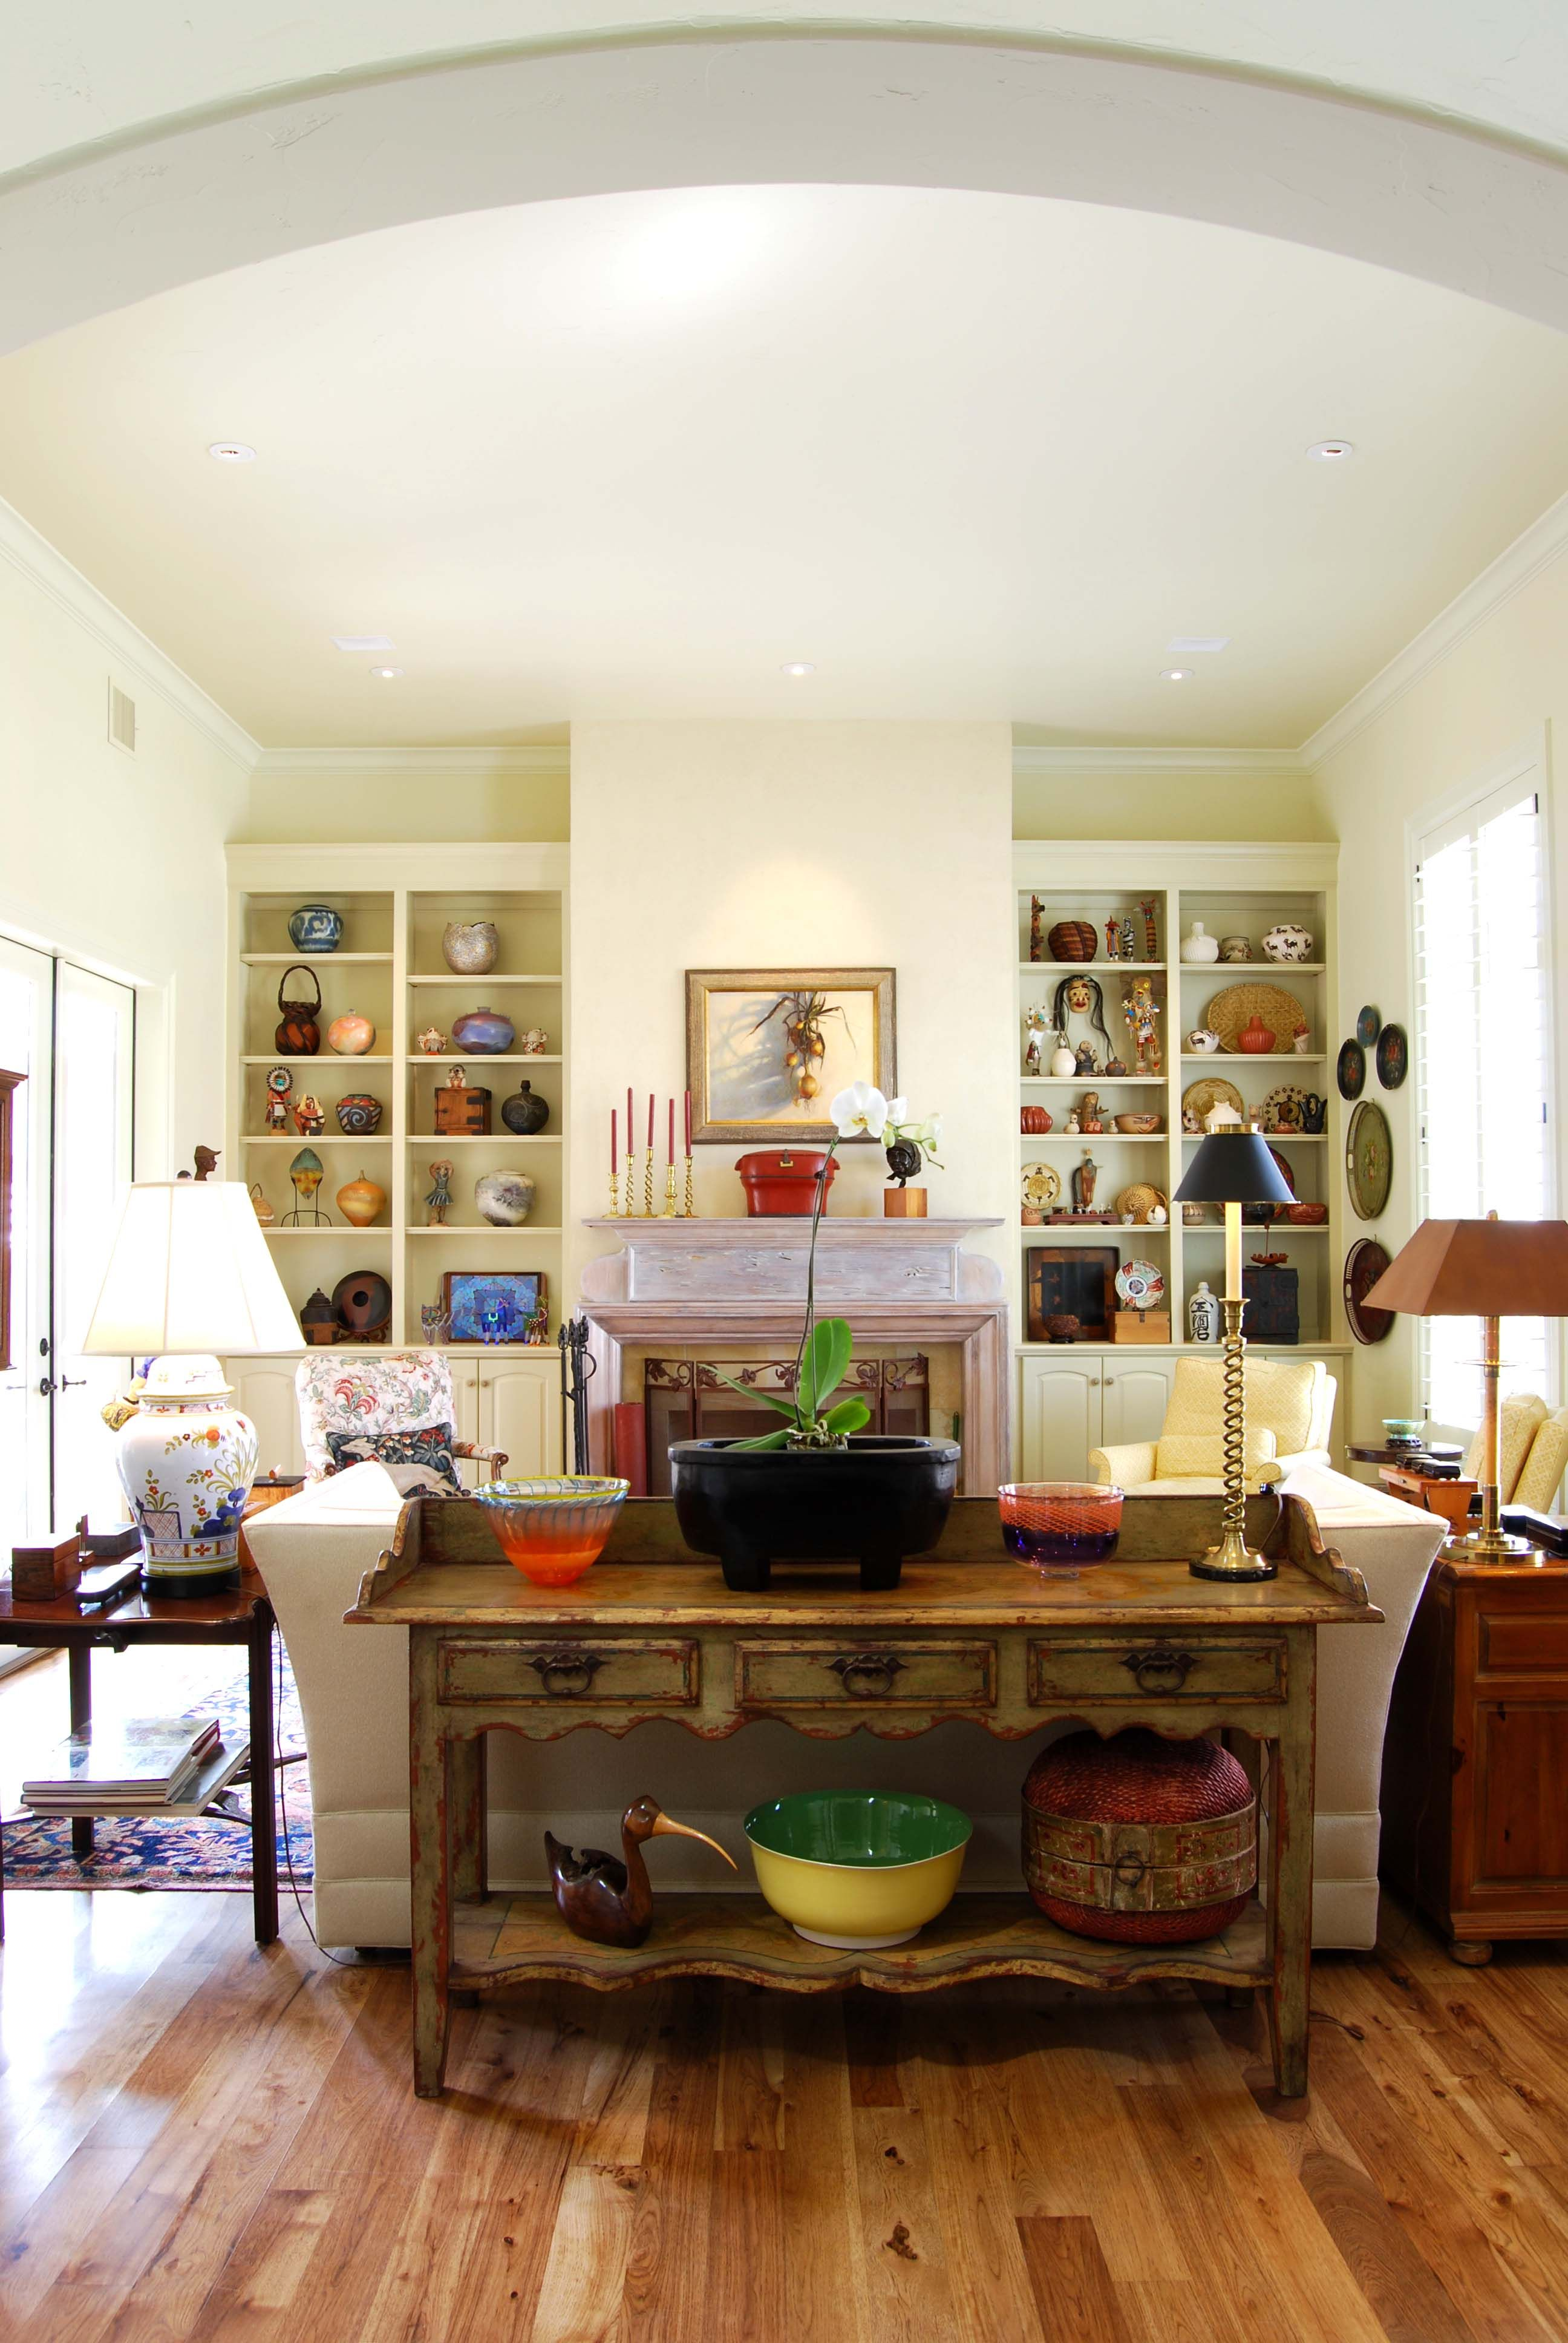 The living room of this Mediterranean style